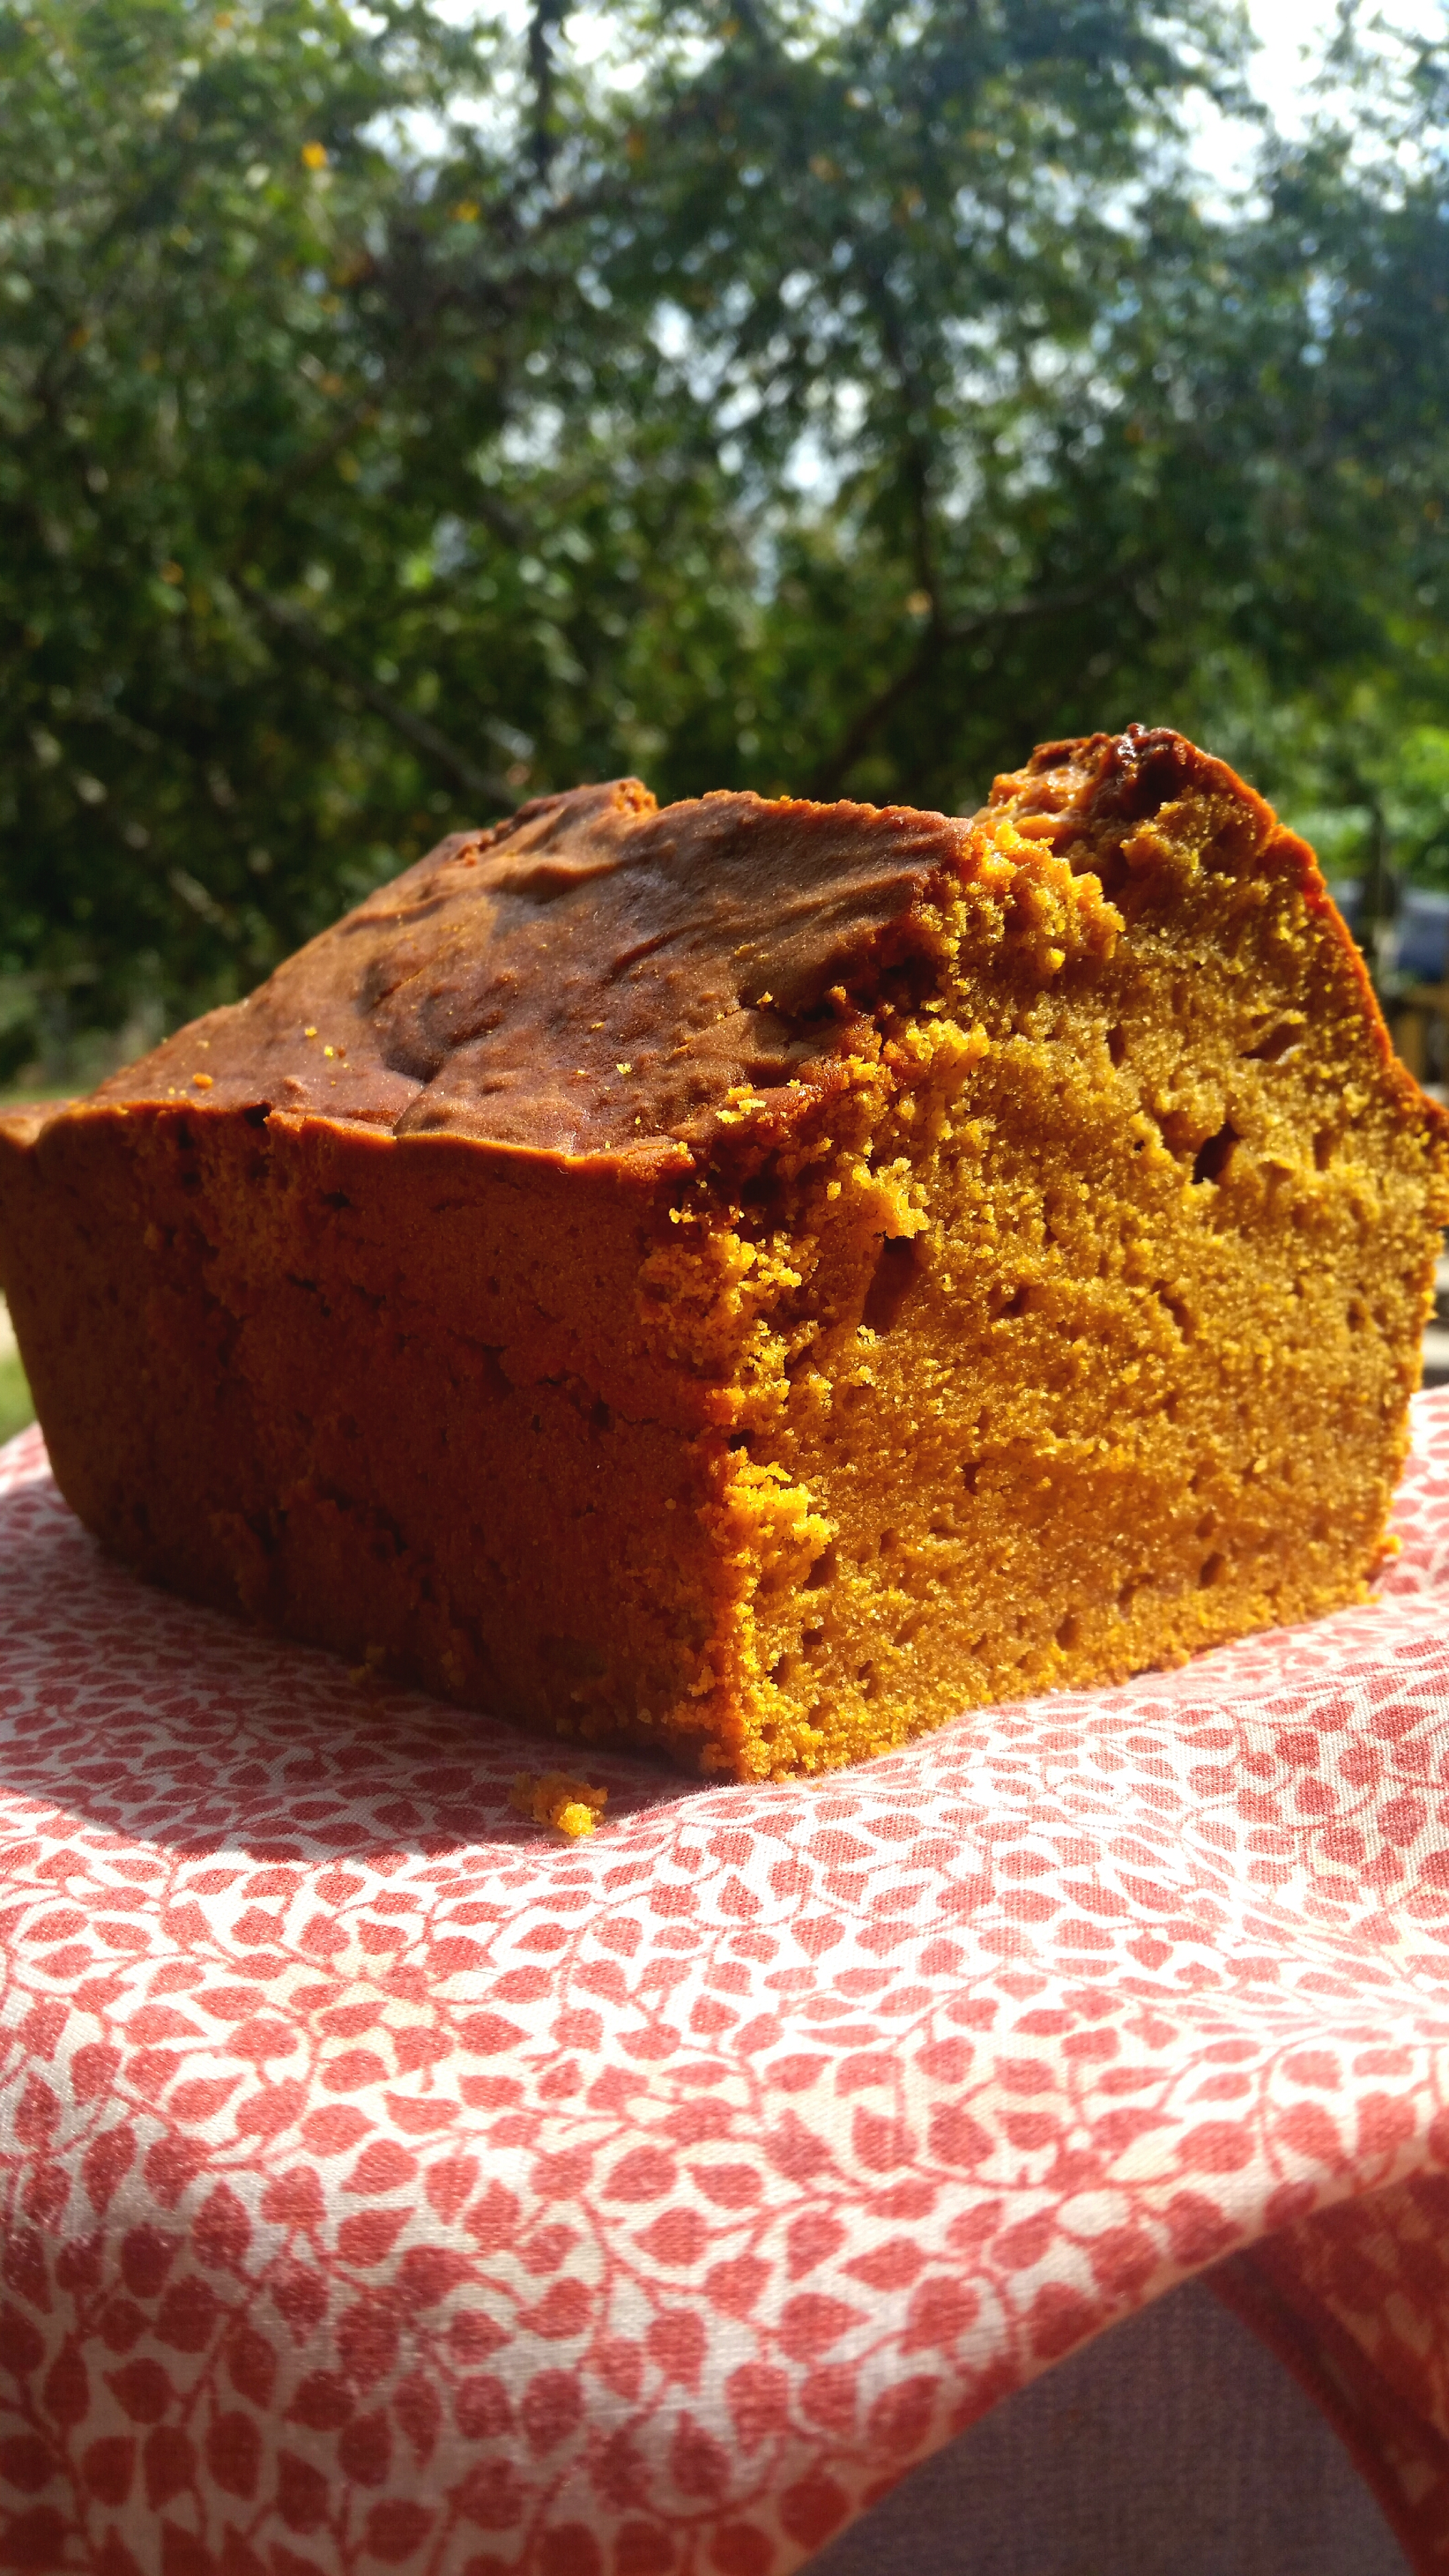 pumpkin bread in sunlight